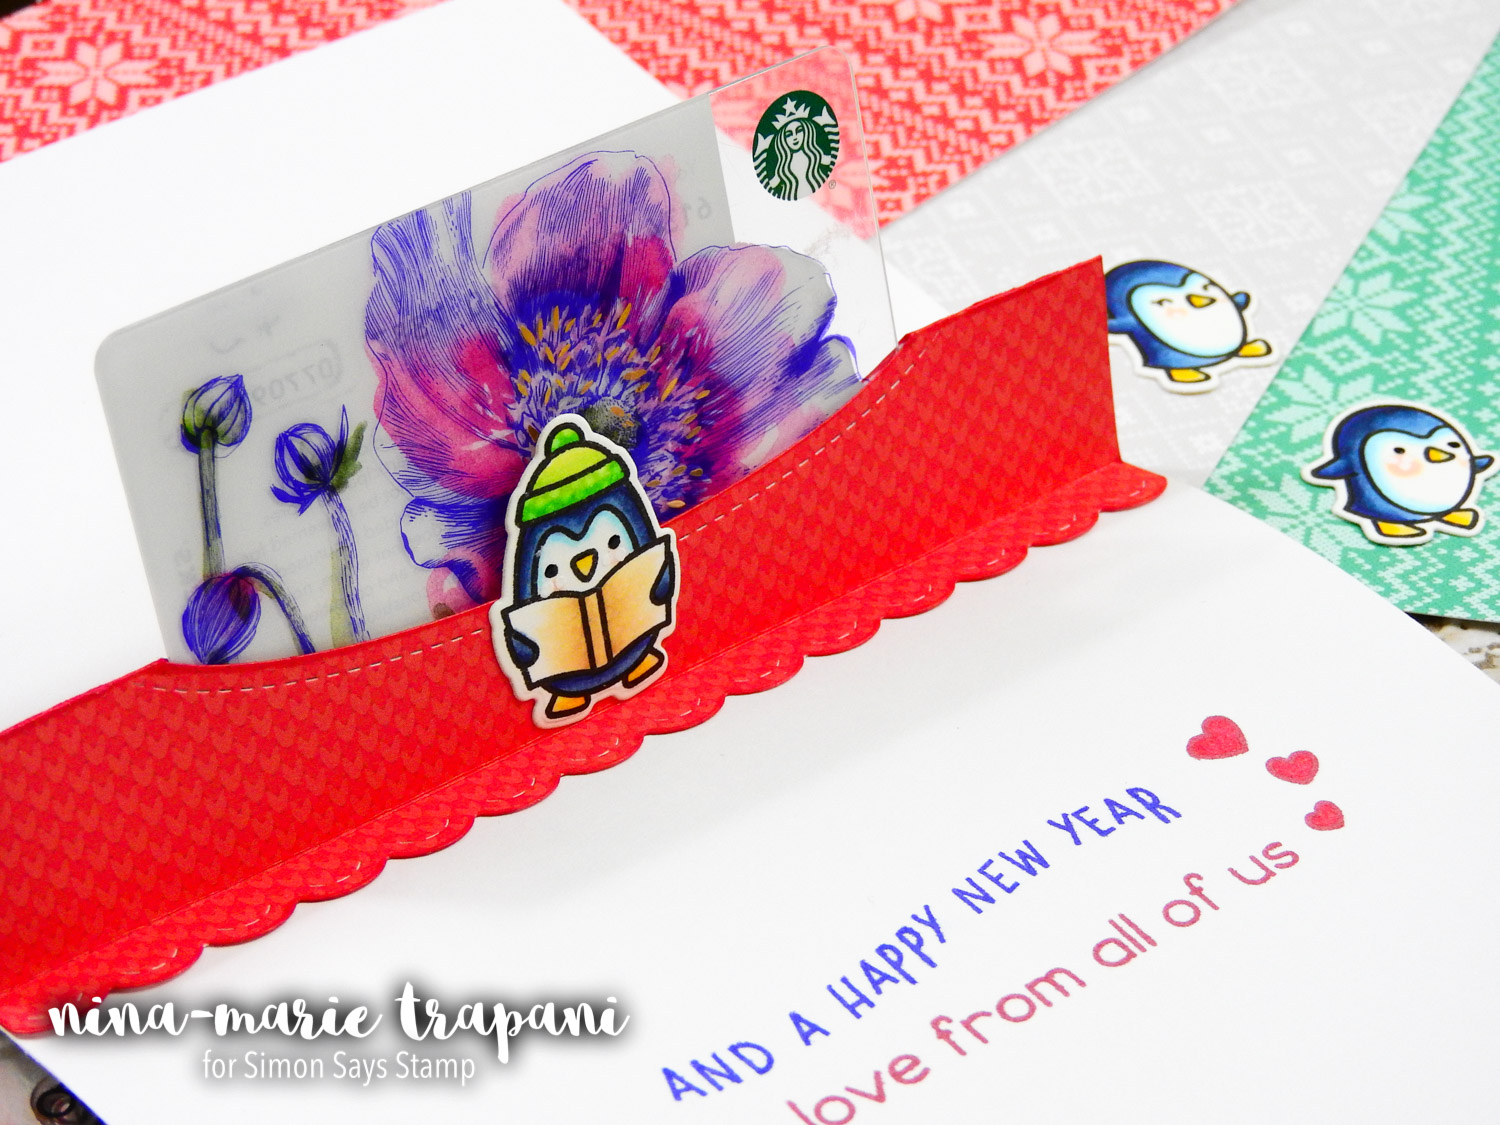 Studio Monday with Nina-Marie: Lawn Fawn Pop Up Holiday Gift Card   Nina-Marie Design